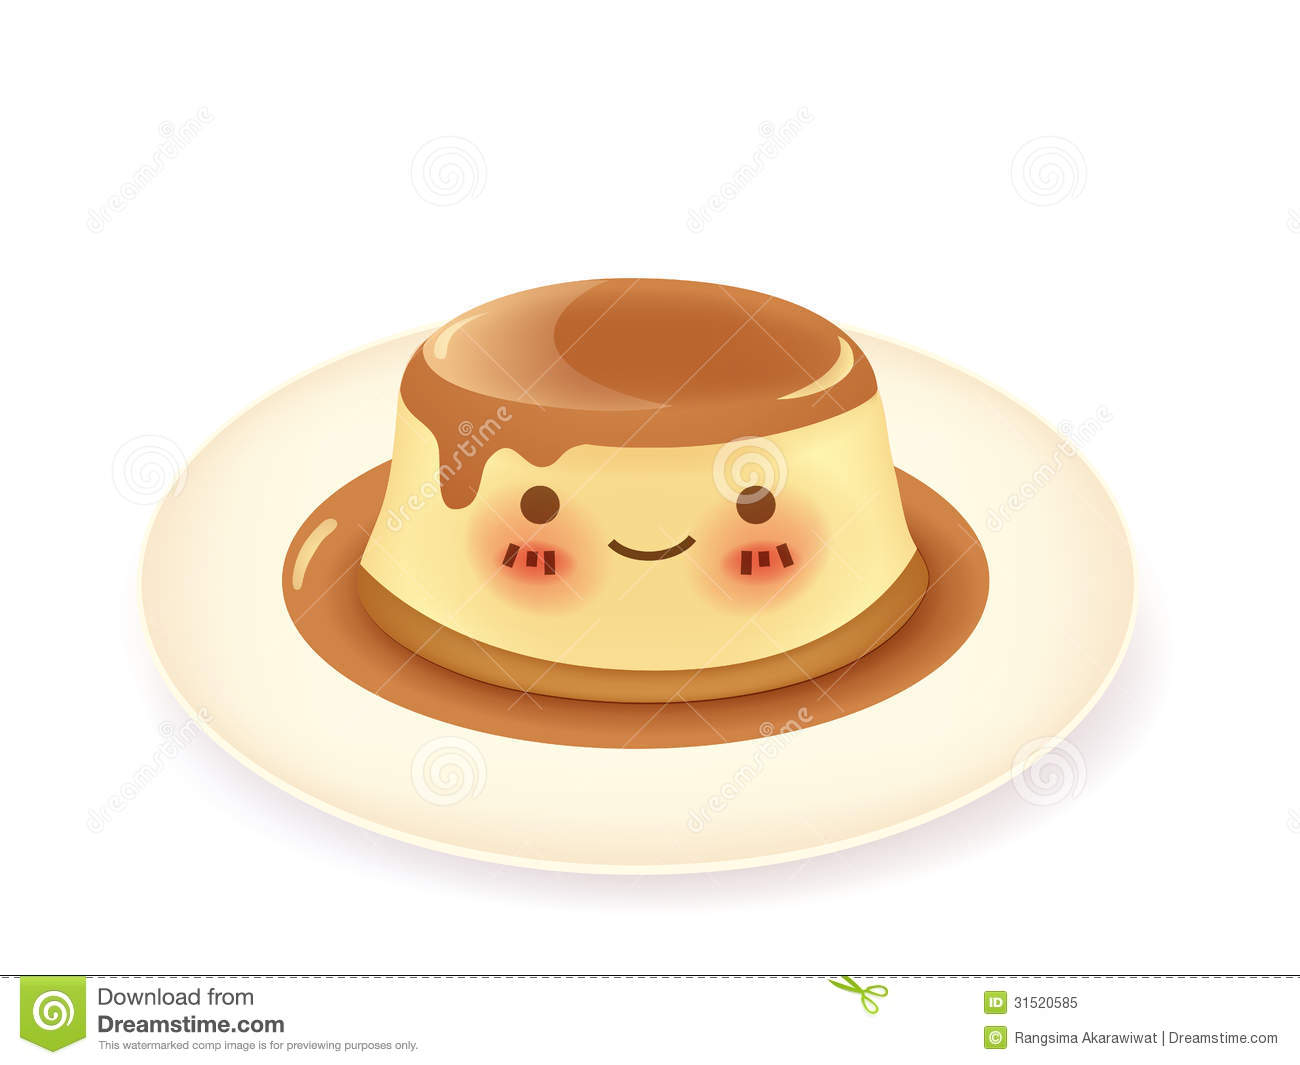 caramel custard pudding royalty free stock photo image business woman clipart images business woman clipart images